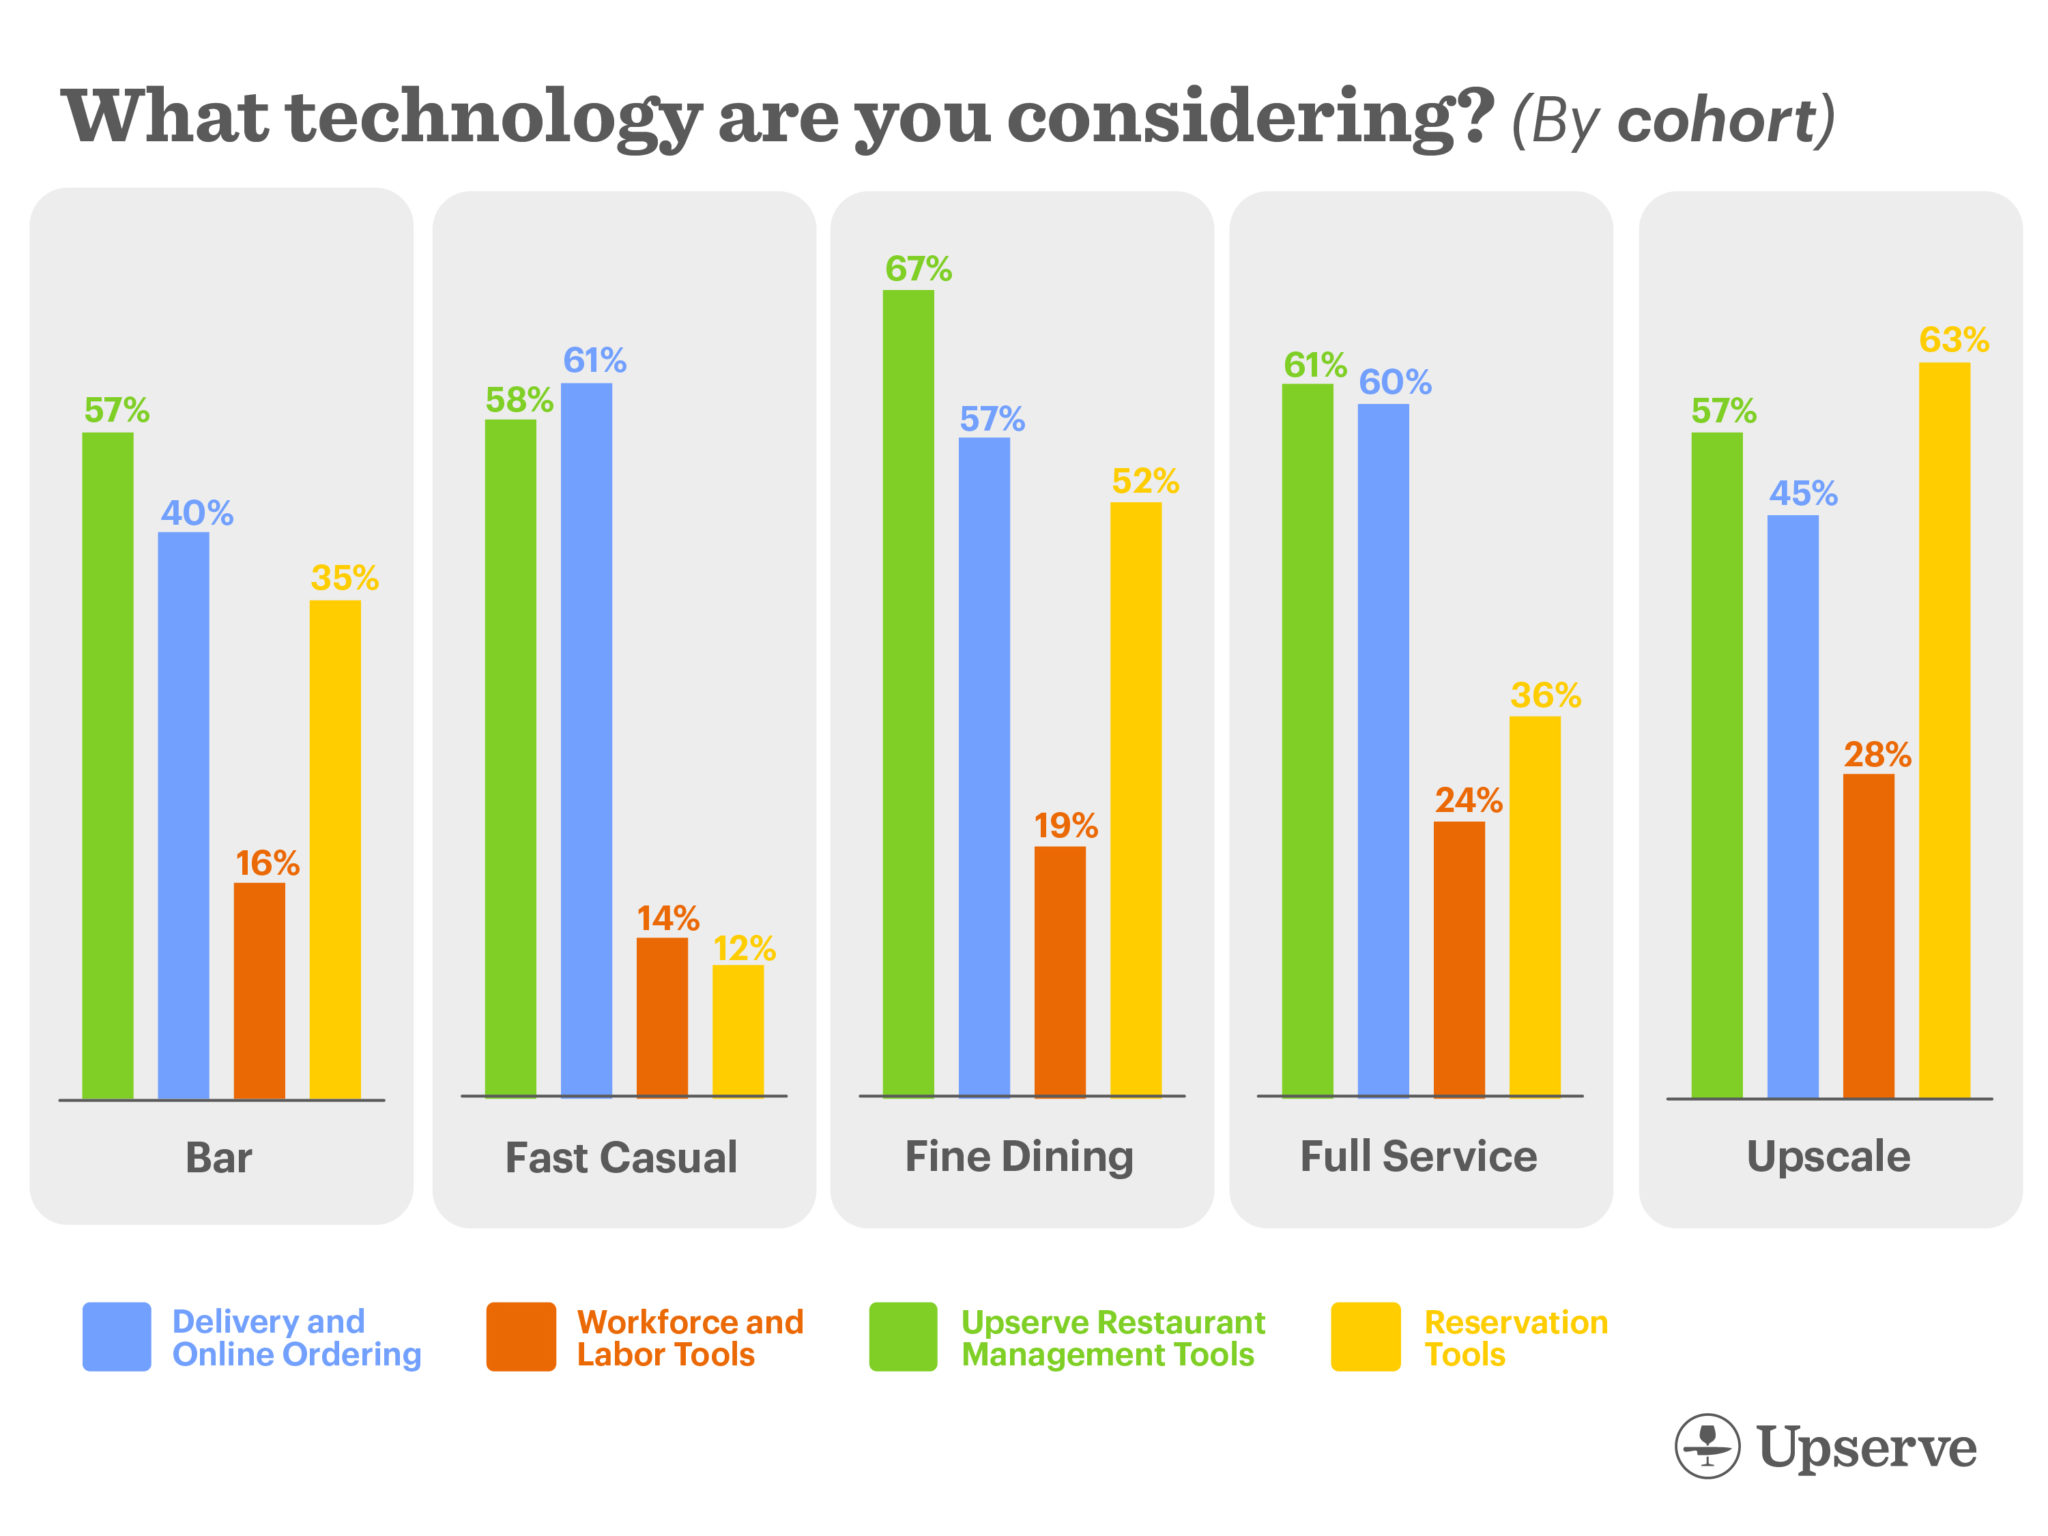 What technology does each restaurant type consider for re-opening?